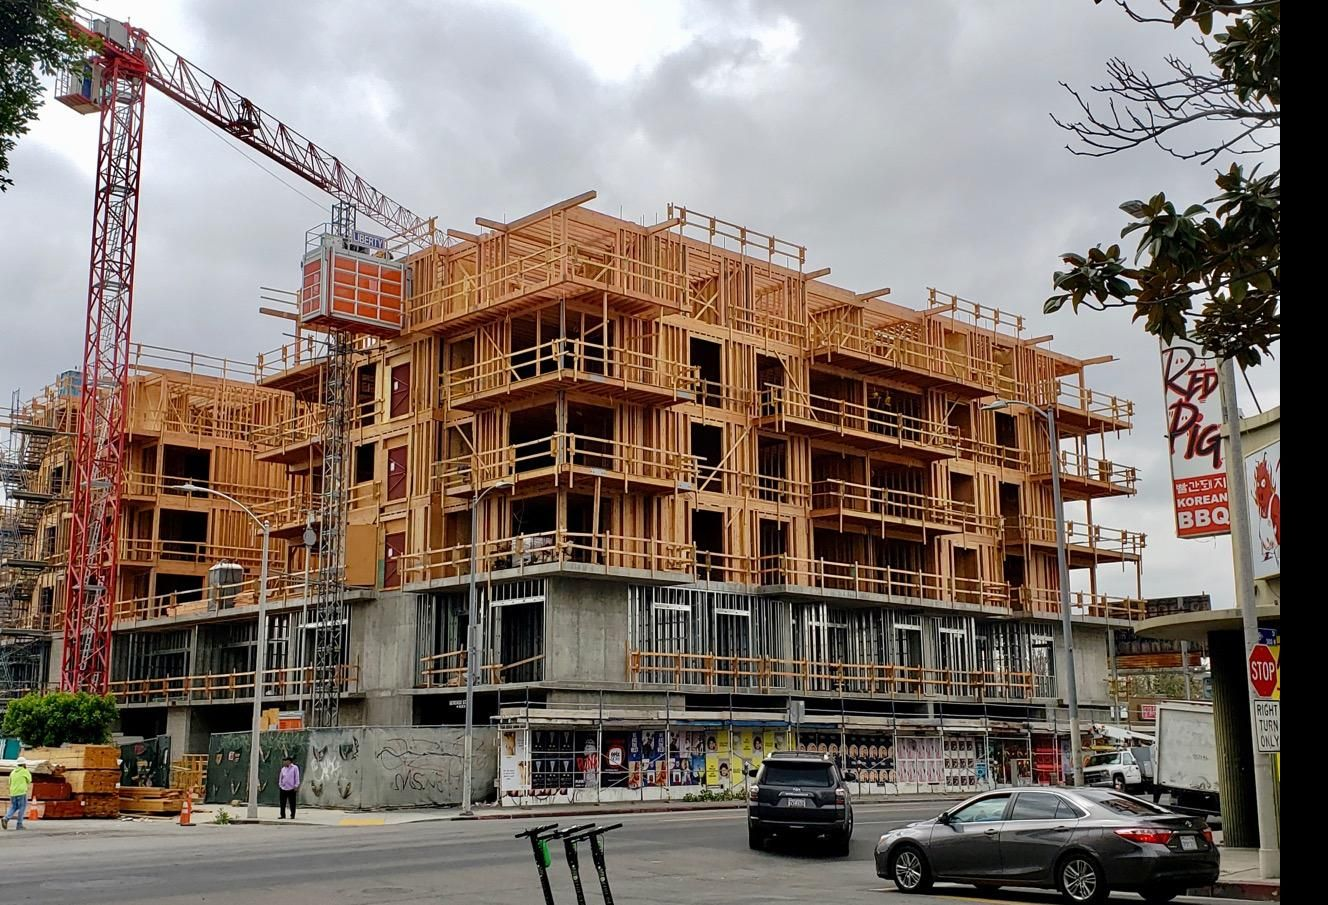 Construction of a multifamily building at 3100 W. 8th Street in the Koreatown neighborhood of Los Angeles